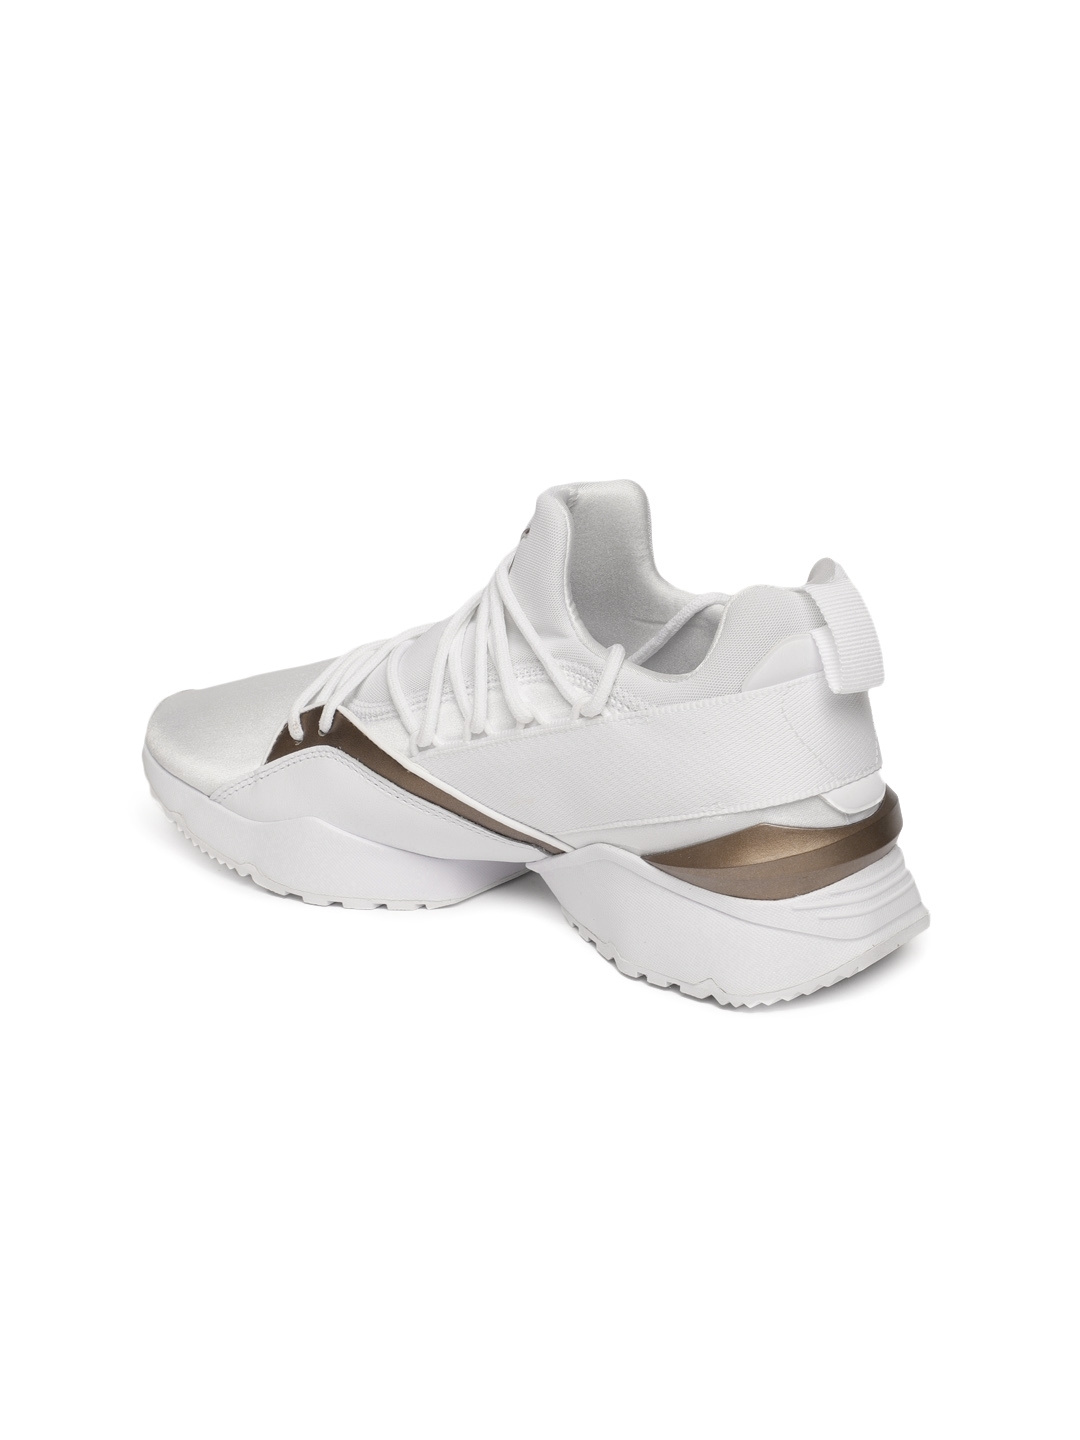 69985a898a5e Buy Puma Women White Muse Maia Luxe Sneakers - Casual Shoes for ...